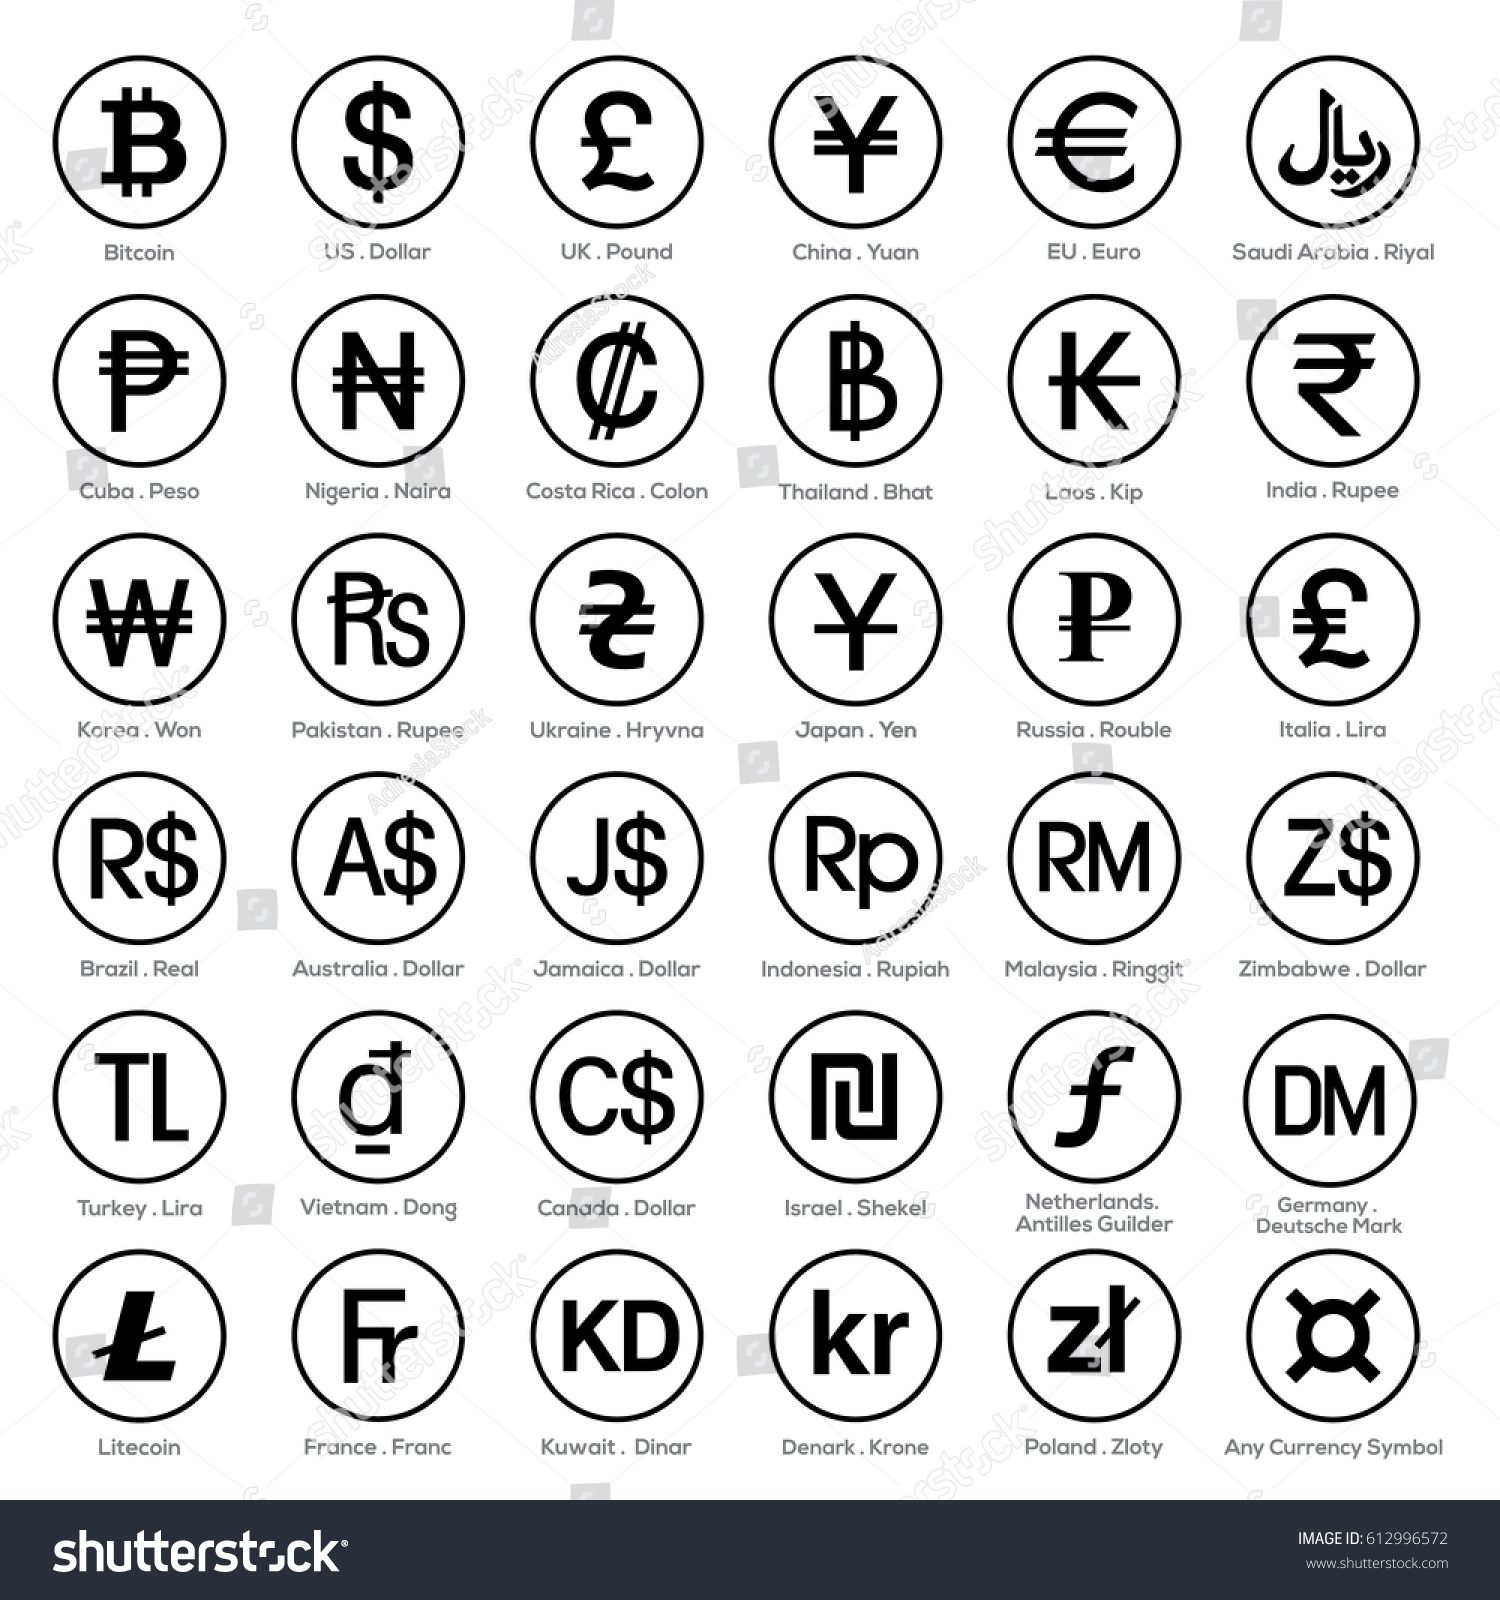 Currency Symbol Icon Sets Stock Vector Royalty Free 612996572